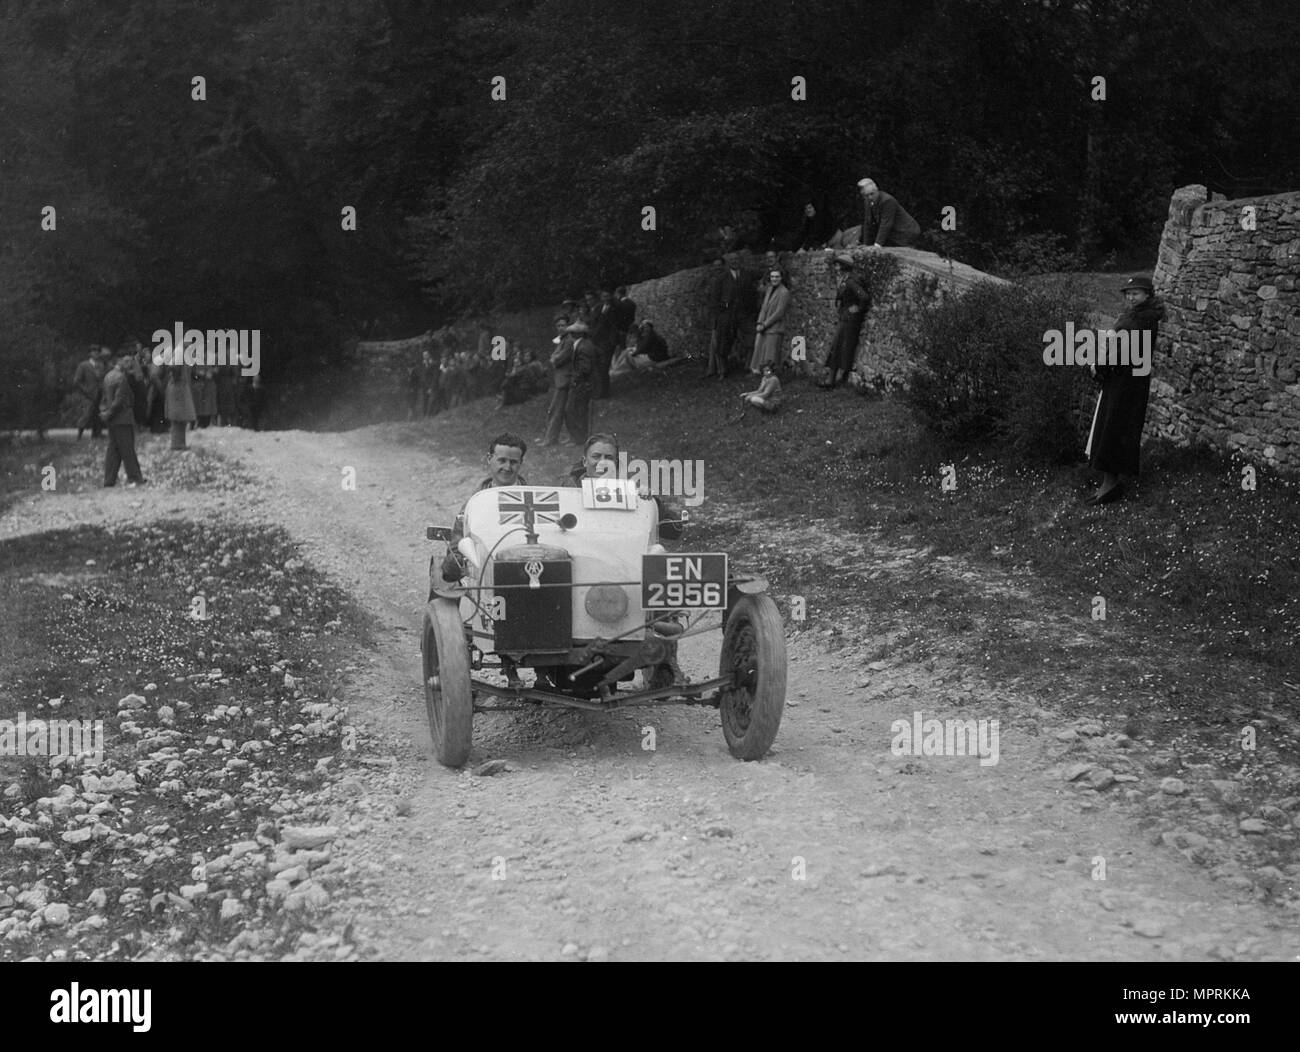 Special trials car competing in a motoring trial, Nailsworth Ladder, Gloucestershire, 1930s.. Artist: Bill Brunell. - Stock Image